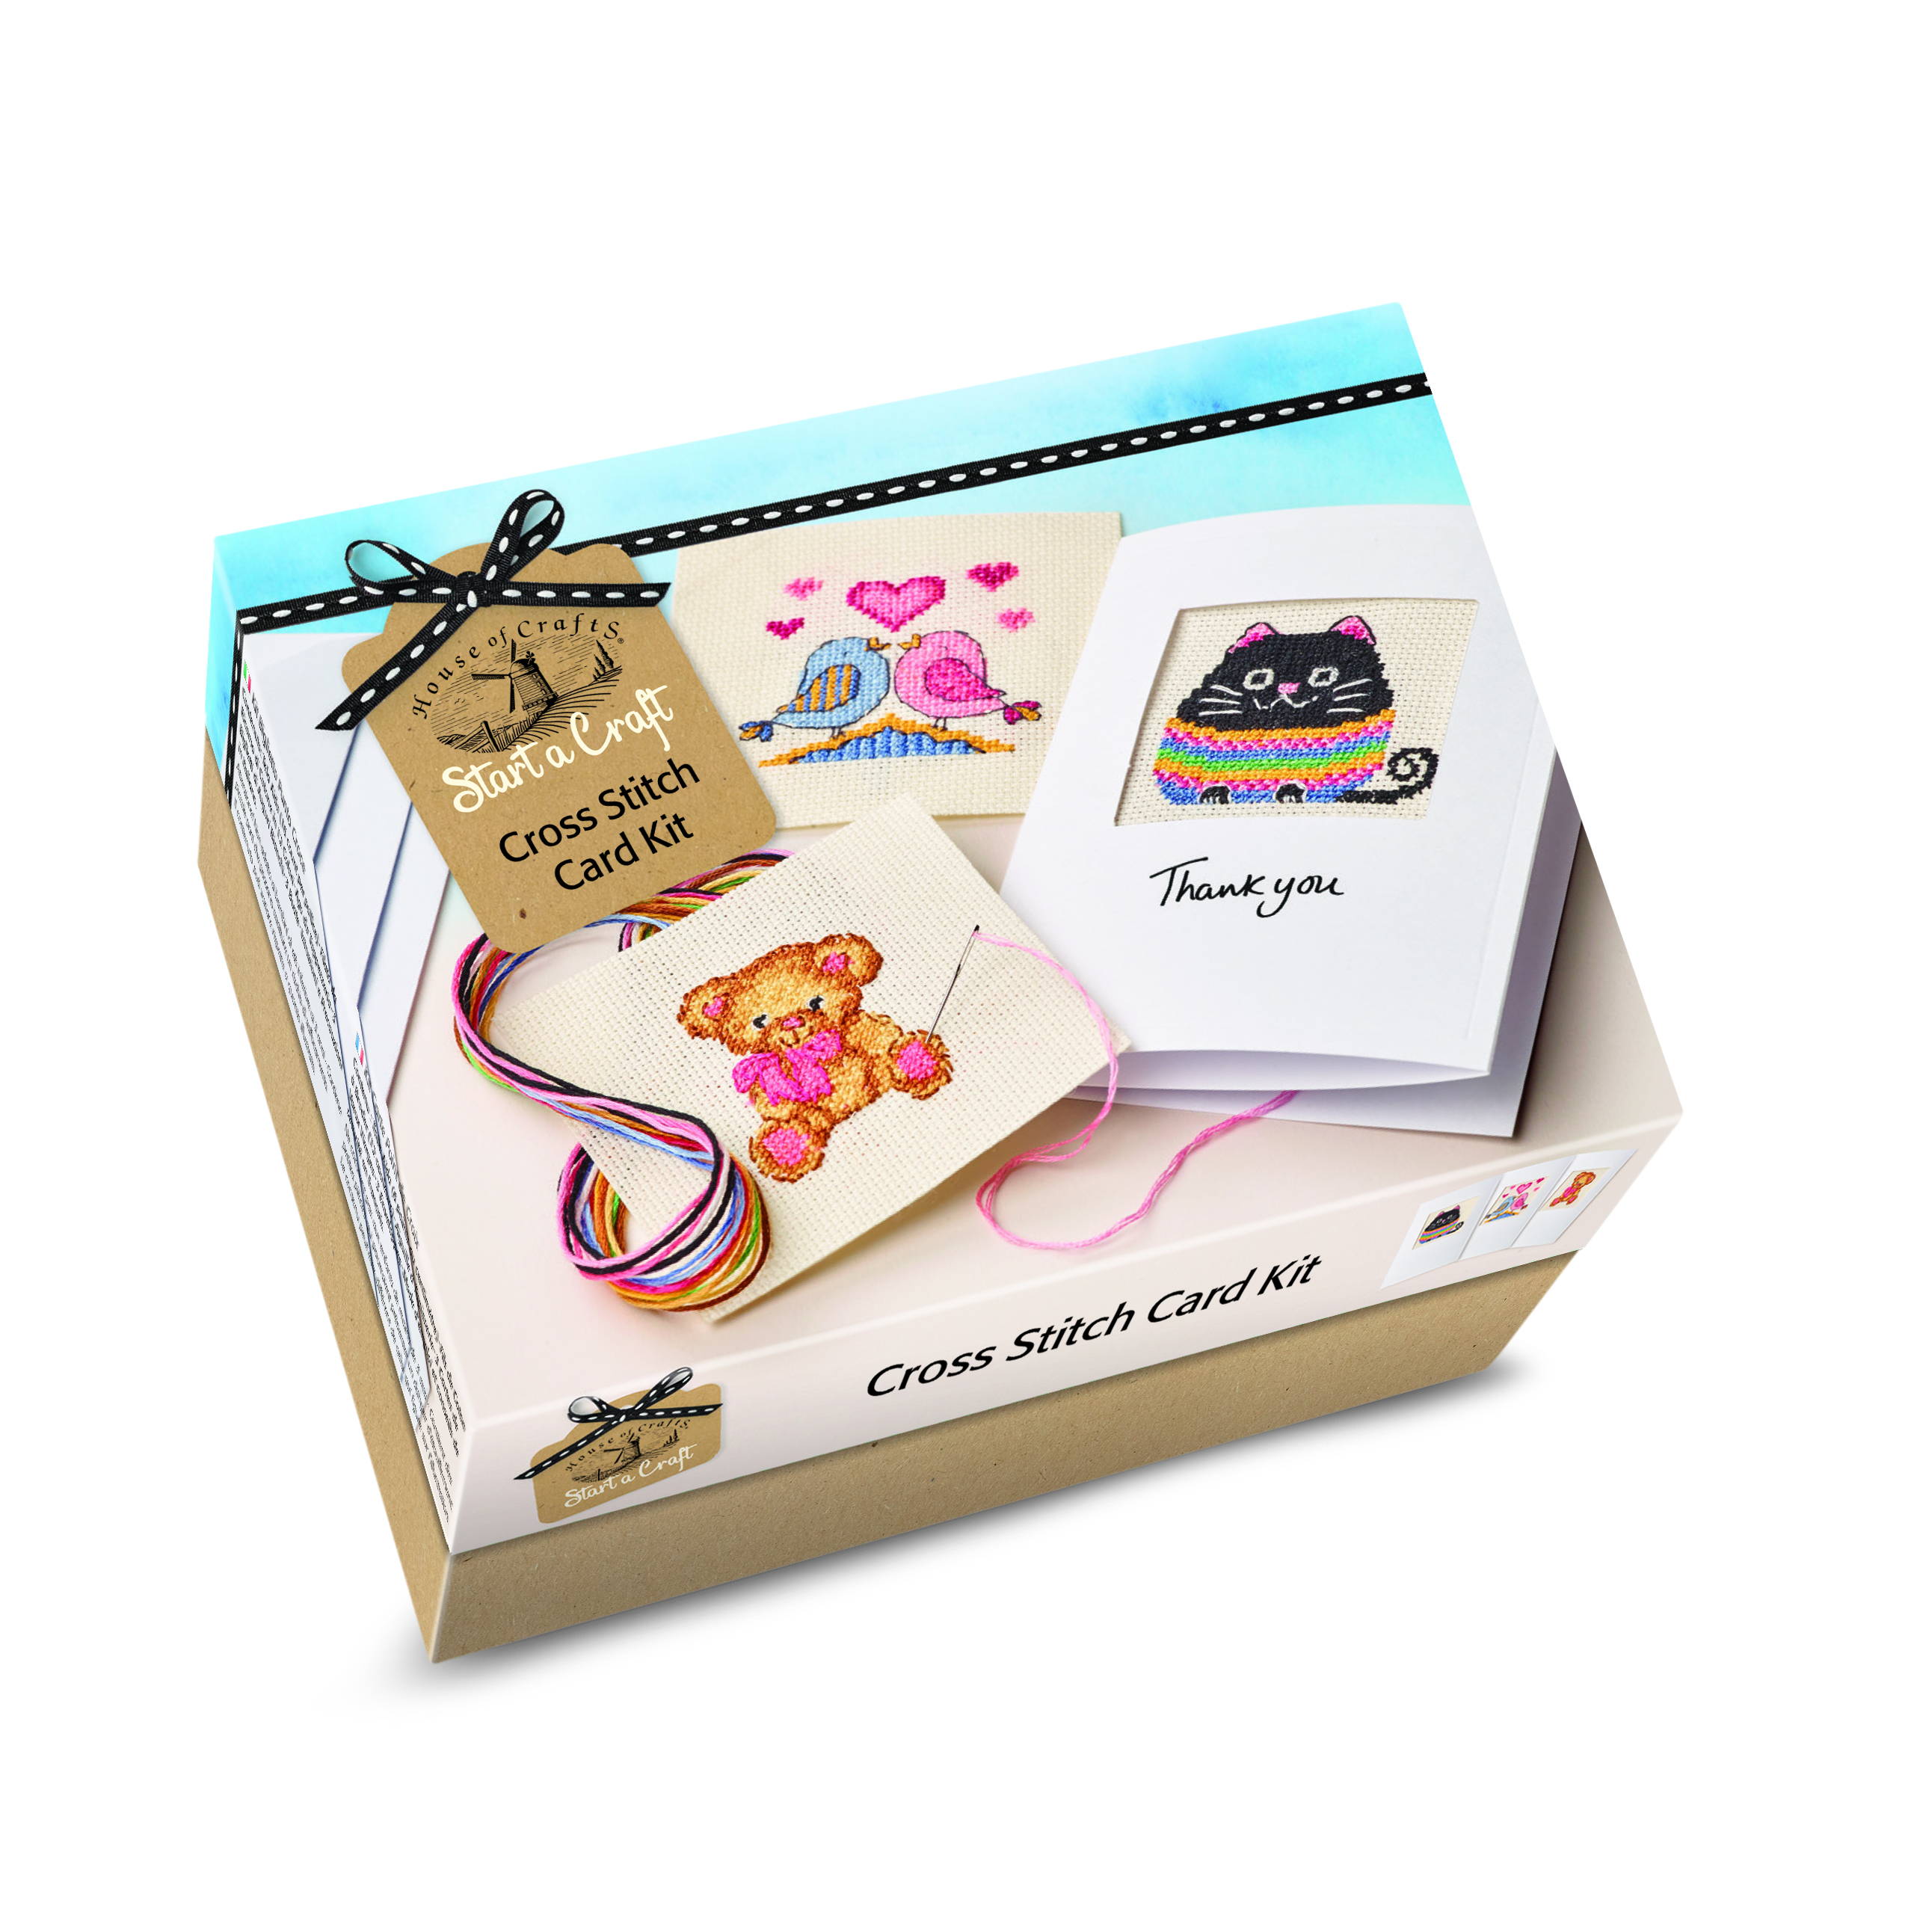 HOUSE OF CRAFTS CROSS STITCH CARDS KIT SC060